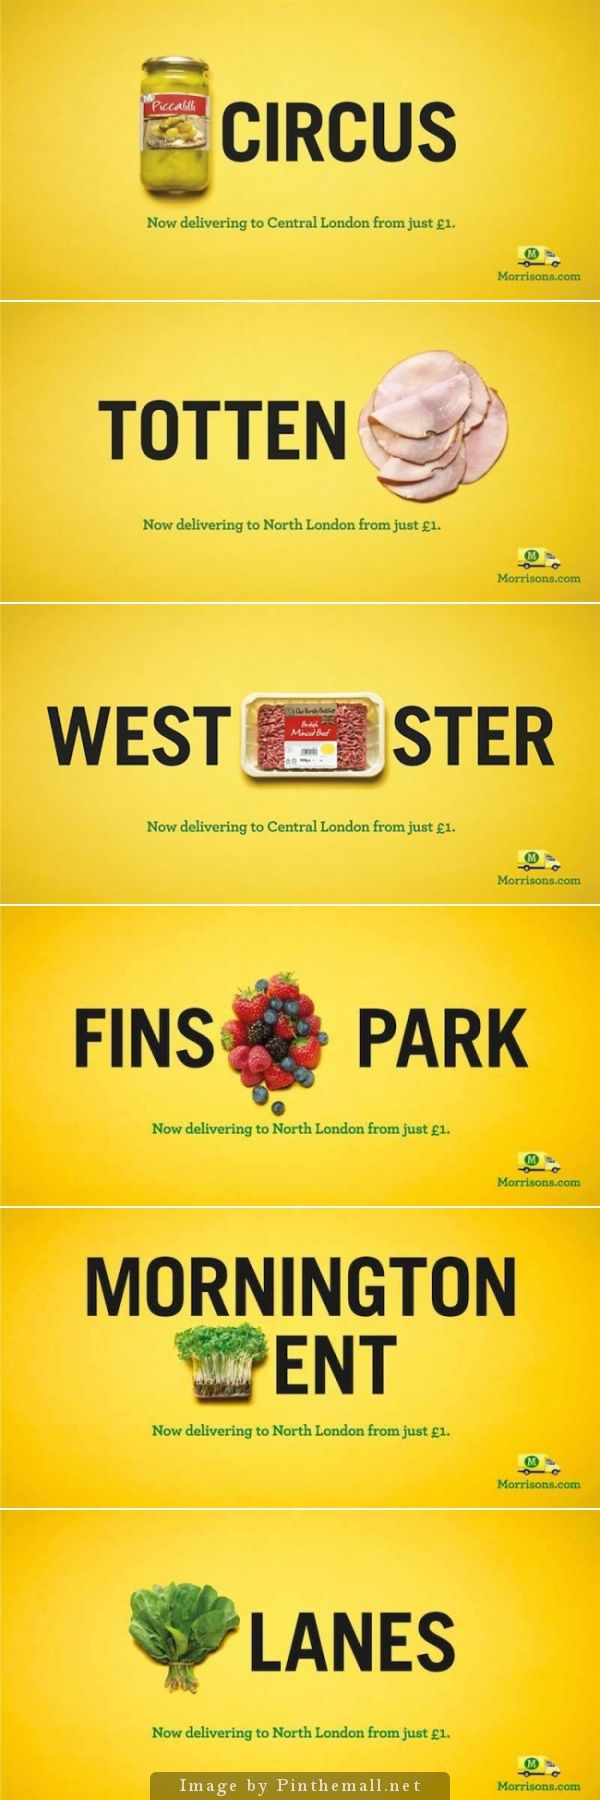 UK's fourth largest supermarket chain, Morrisons, has launched a pun-tastic OOH campaign via DLKW Lowe promoting Morrisons.com home delivery service now available for Londoners. Their brilliant campaign uses food products into the names of seven famous London areas such as Piccadilly Circus, Tottenham and Westminster. The campaign will not only appeal to Morrisons' loyal customers, but also to any pun lovers out there.